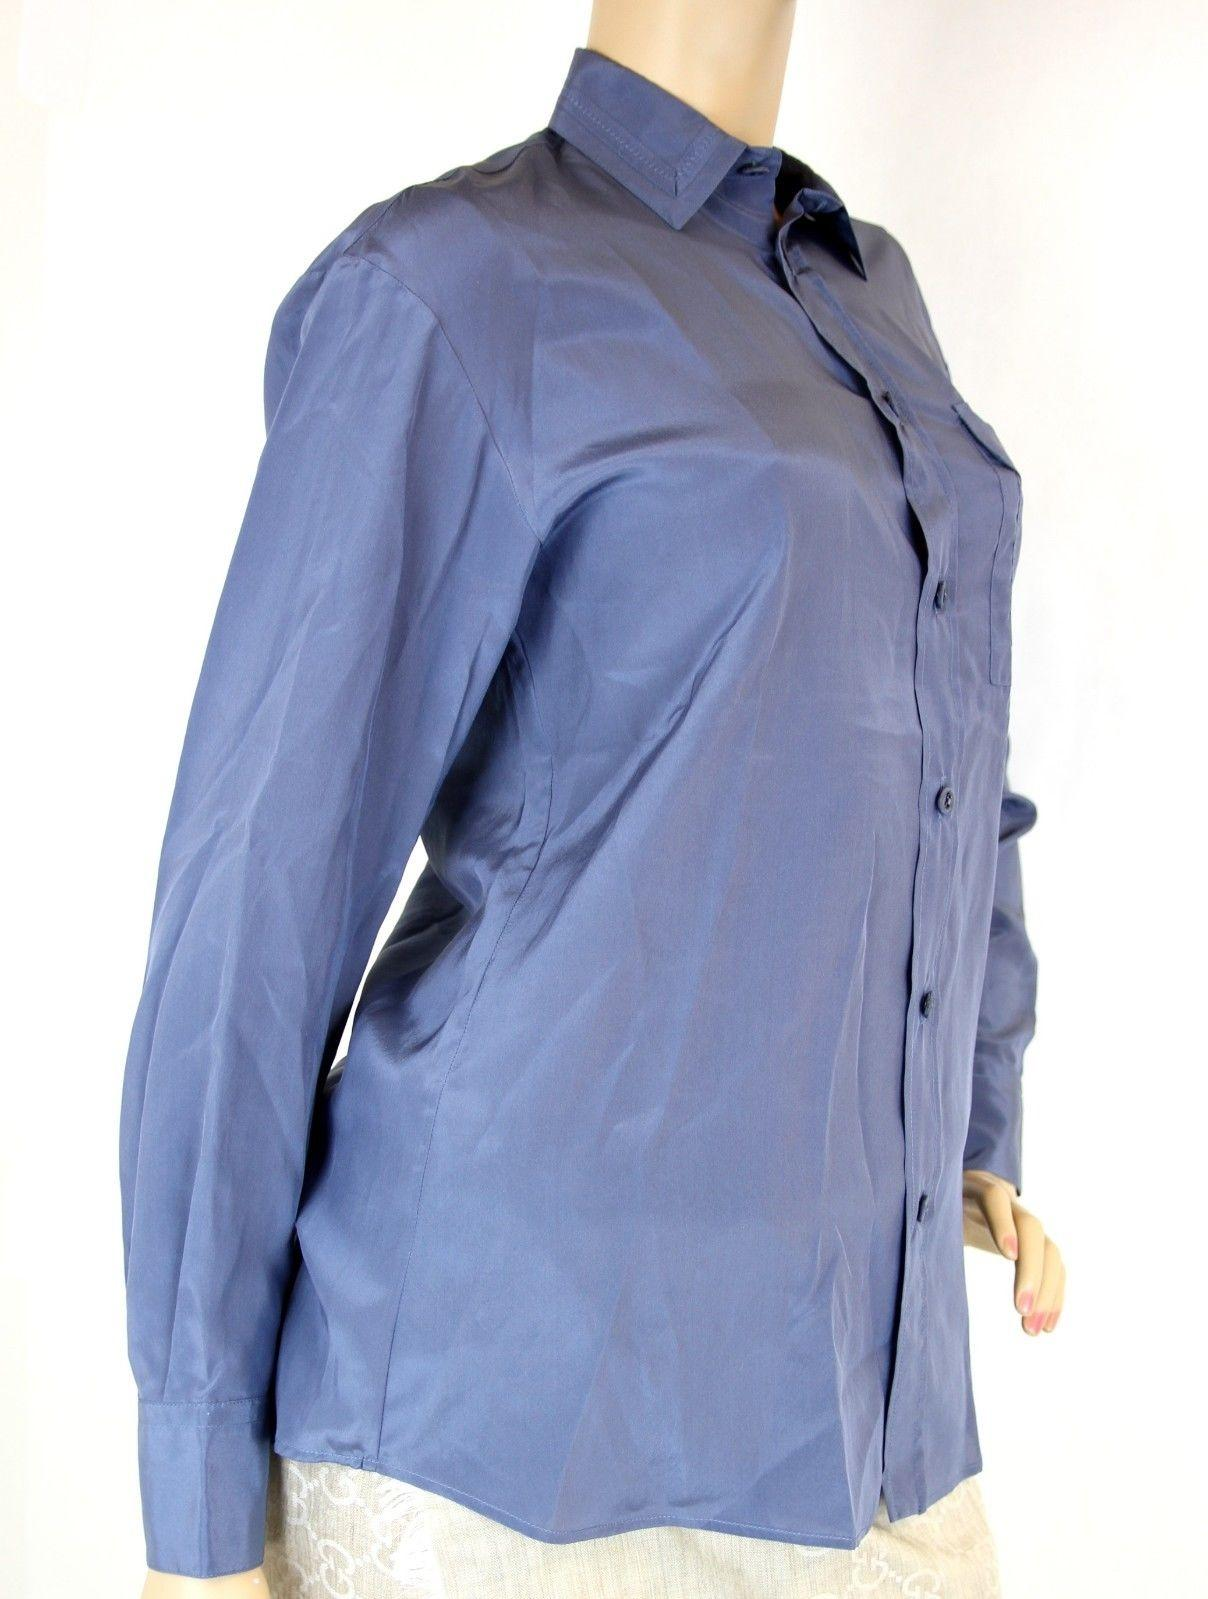 Bottega Veneta Long Sleeve Button-Up Top Discount Countdown Package Clearance Outlet Clearance Fashionable Yv3rXXJxN9